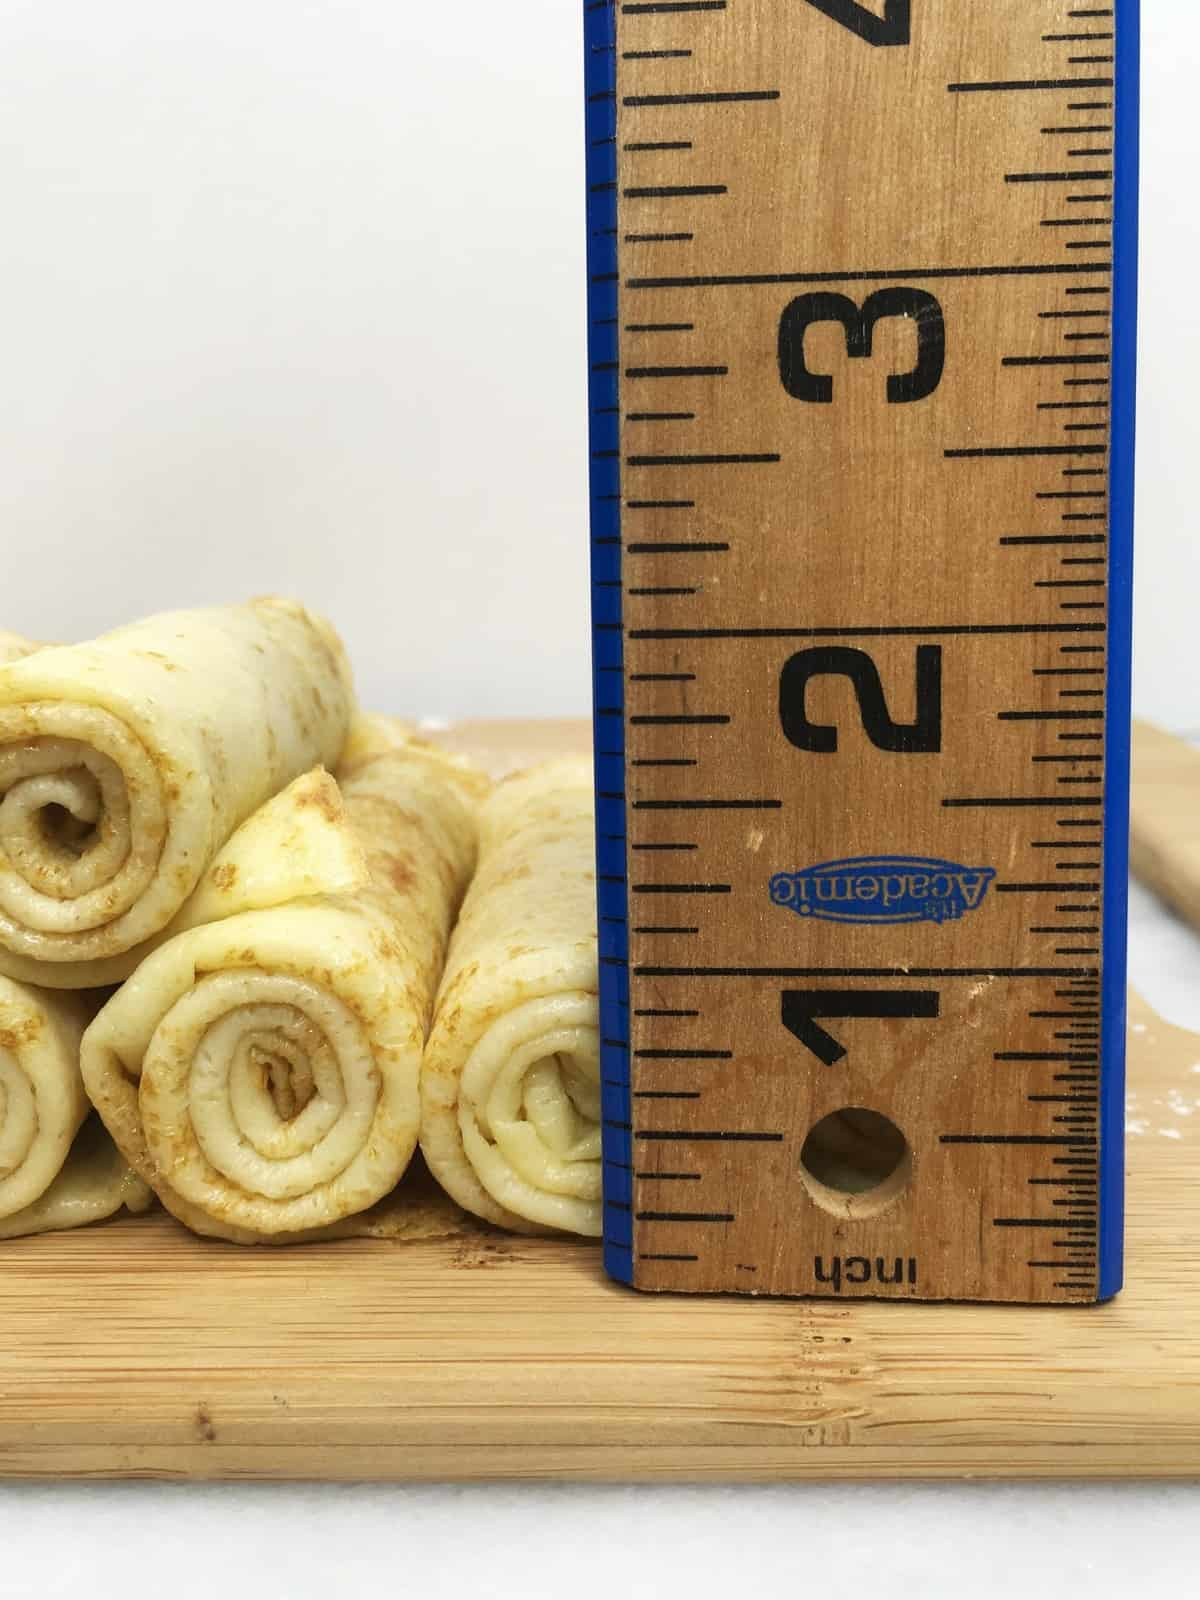 Rolled crepes made according to Authentic French crepes recipe with a wooden ruler on a board